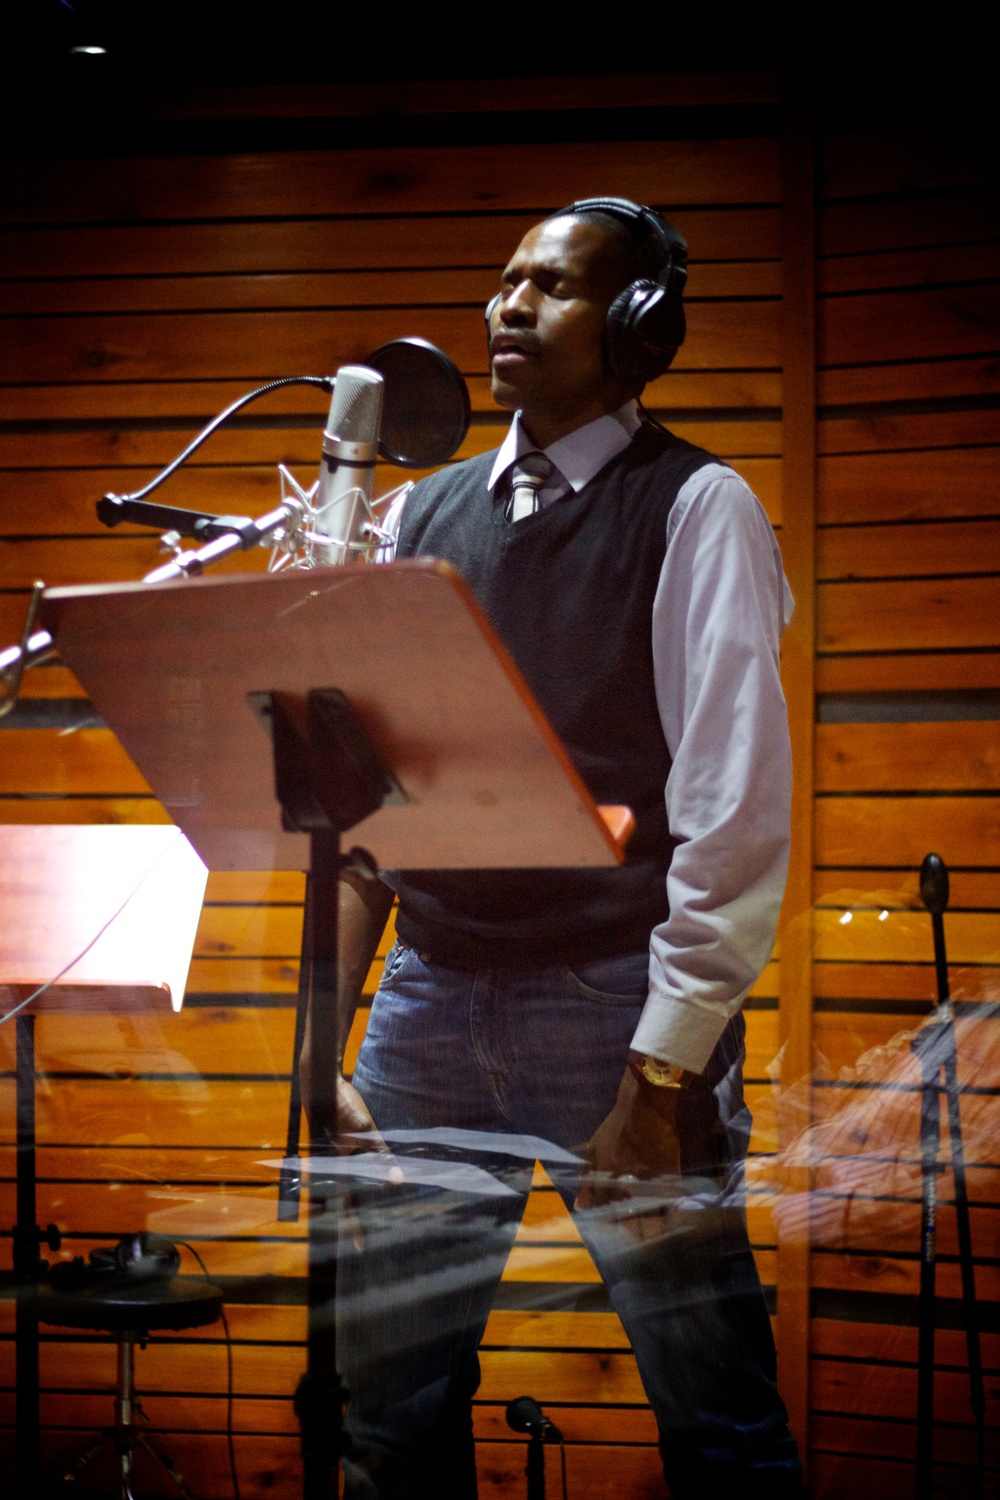 Dusty Simelane recording a track for the new Lusweti album Sitawuphumelela - Songs of Hope.jpg